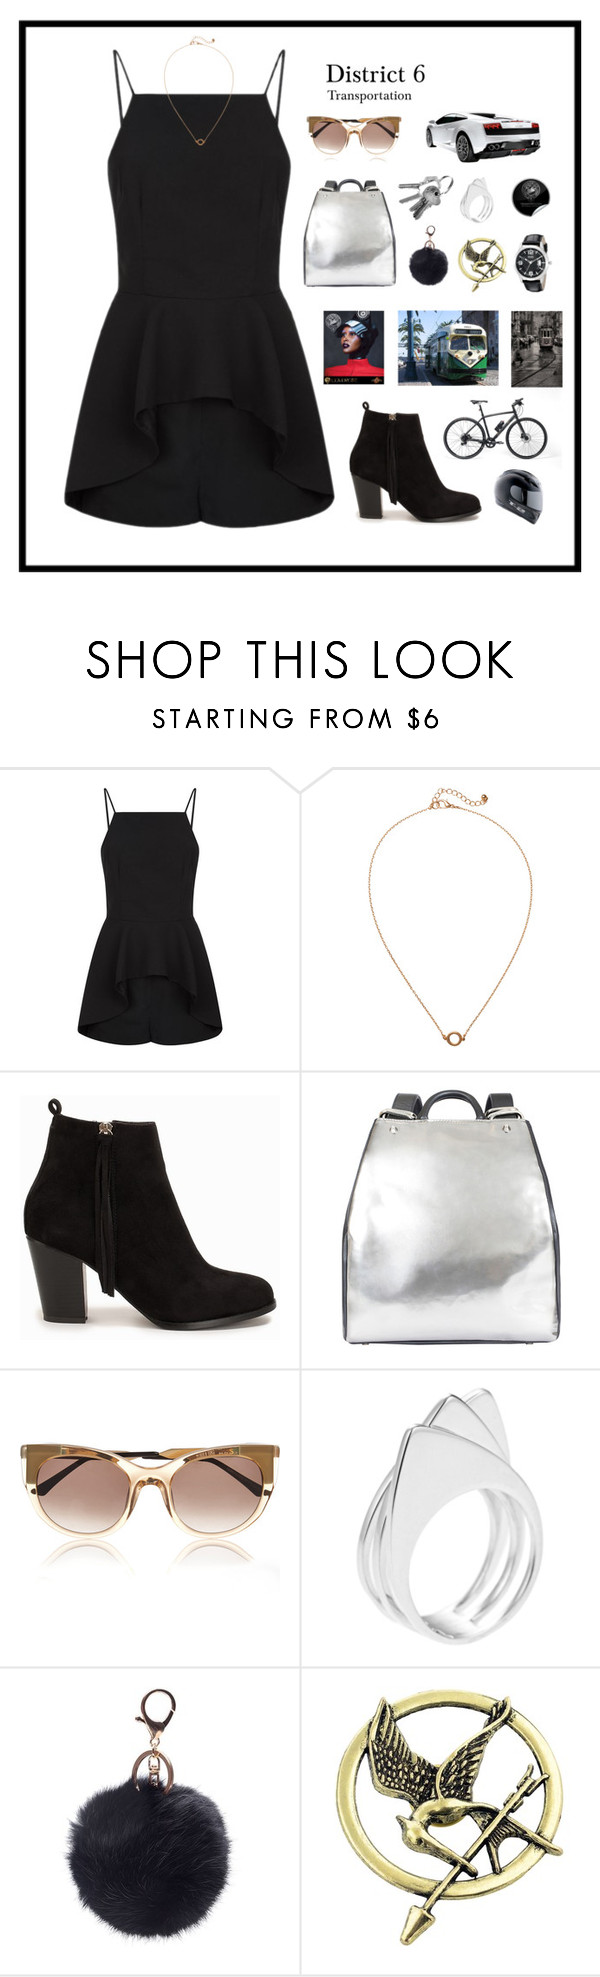 """District 6: Transportation"" by mandiemoo ❤ liked on Polyvore featuring Gucci, Finders Keepers, Monki, Nly Shoes, Ruxx, Thierry Lasry, Ludevine and GUESS"